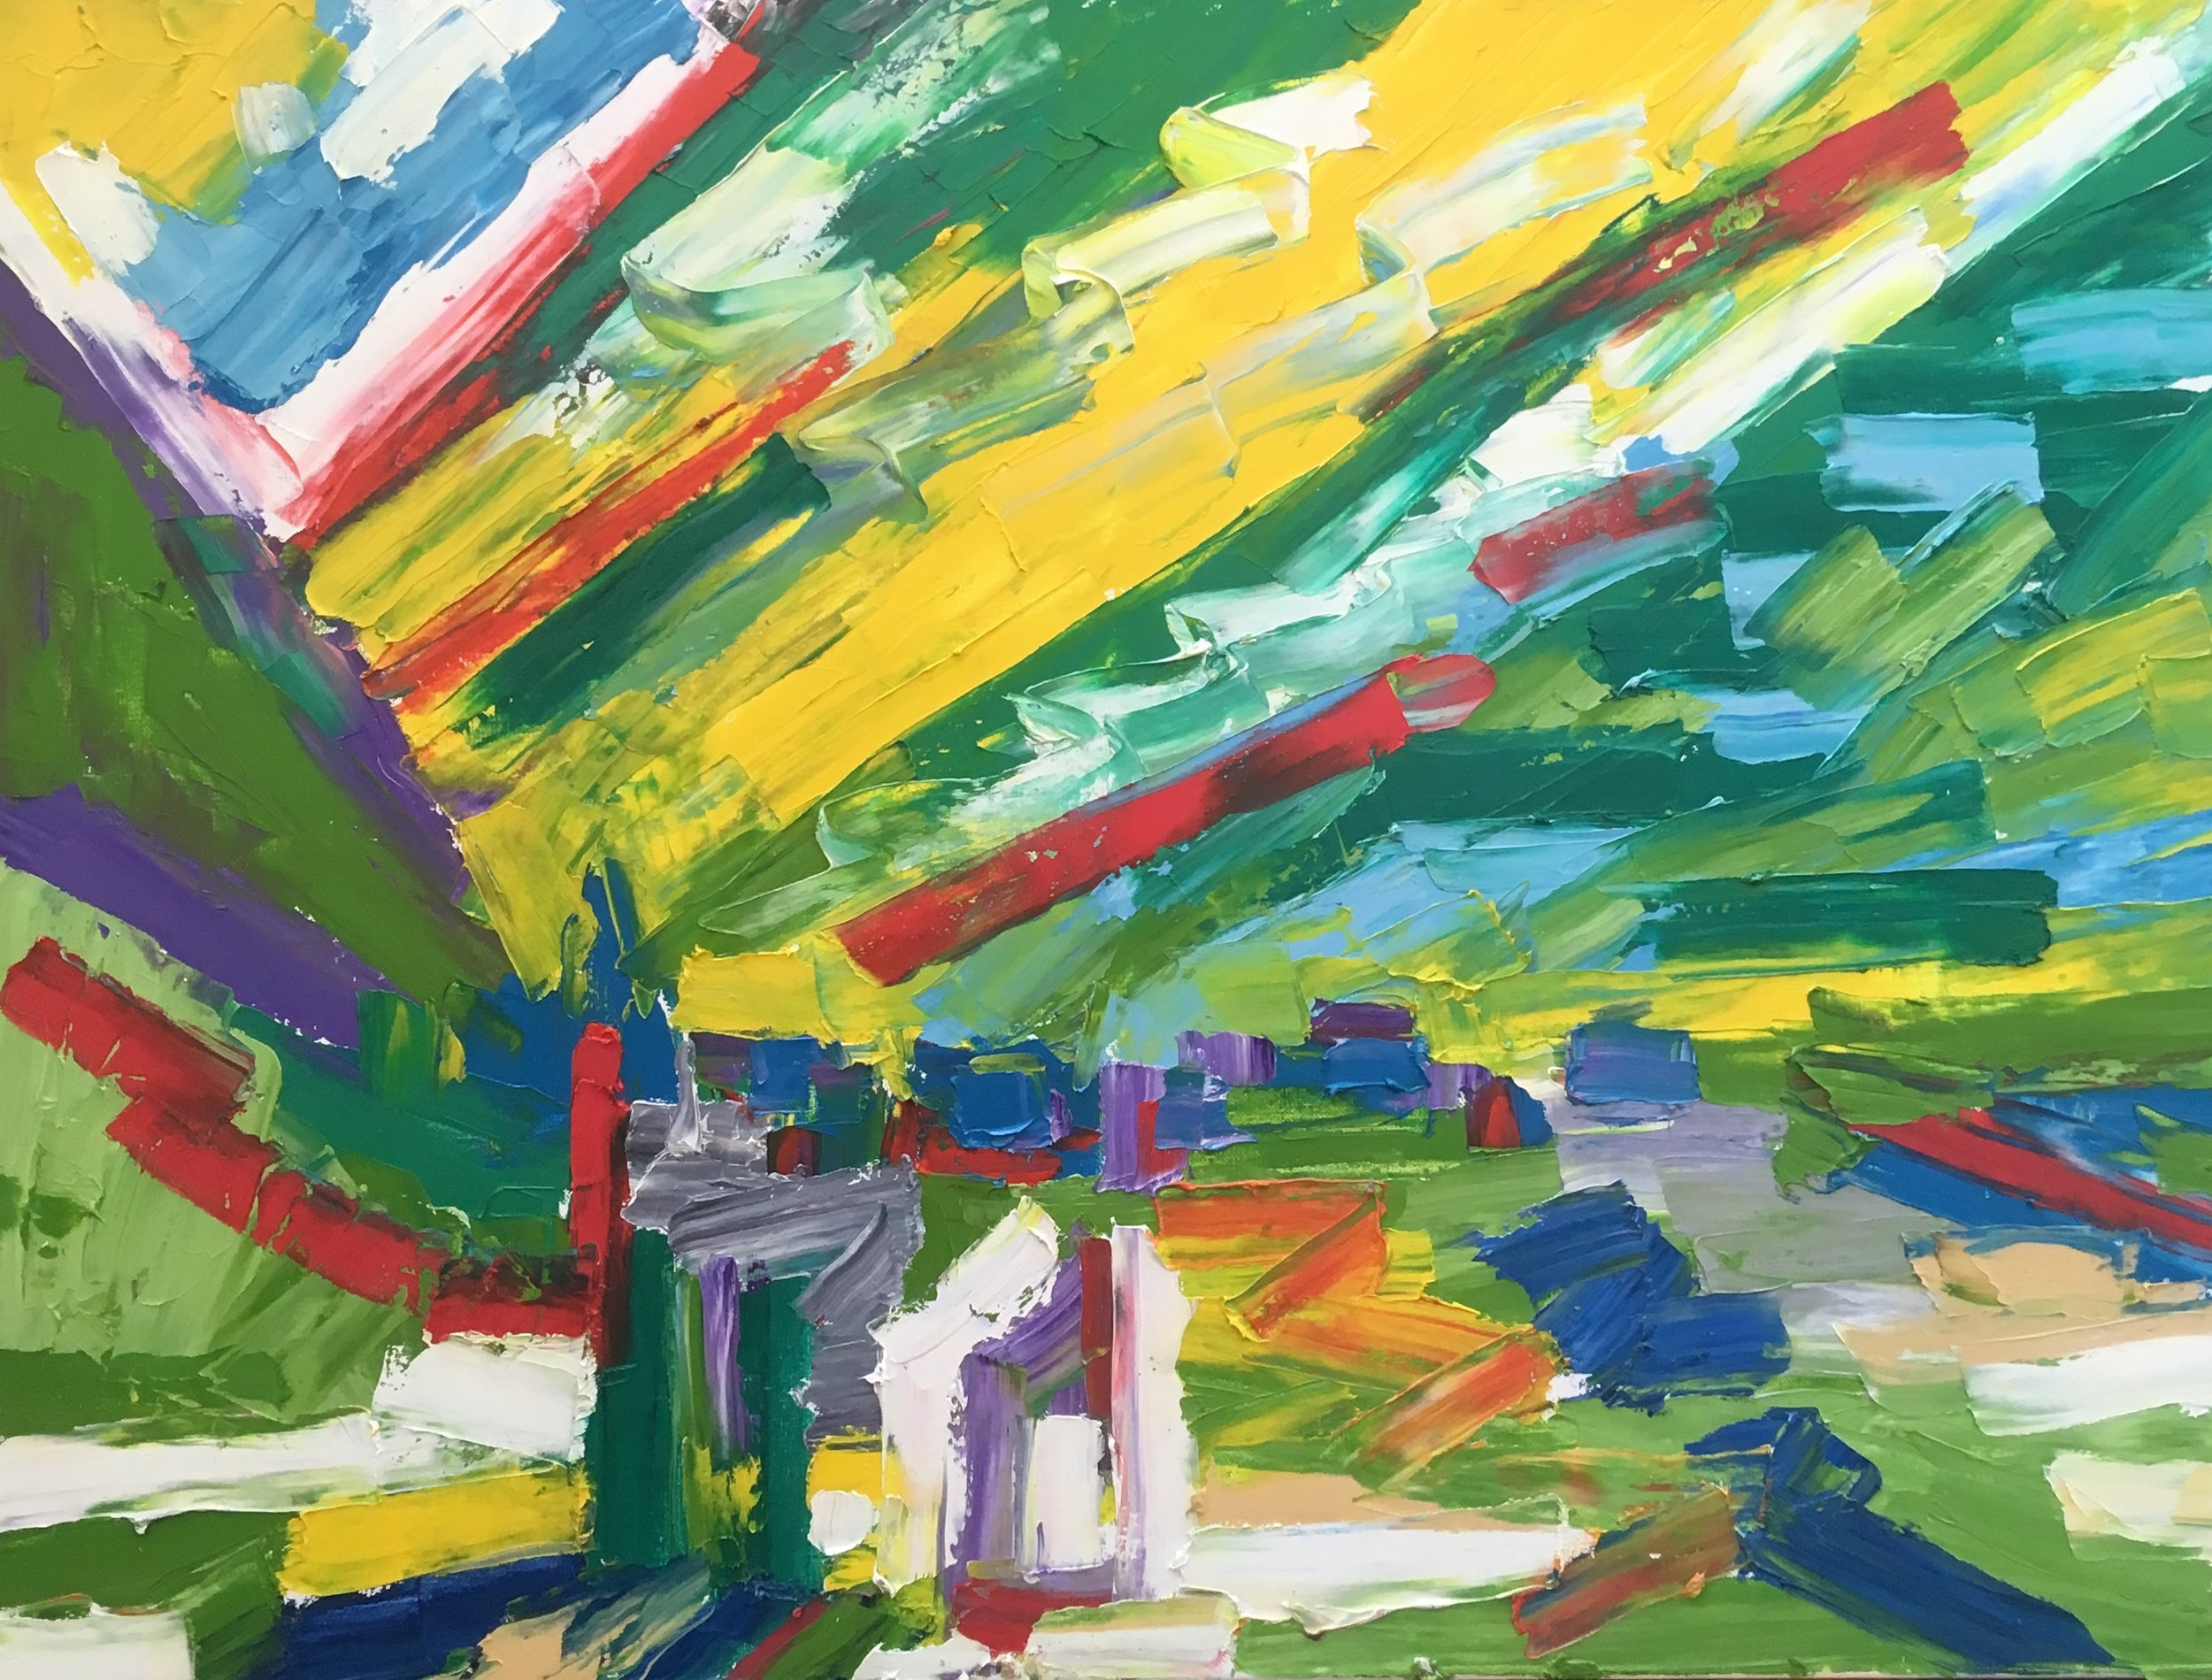 Italian valley village, tuscany  oil on canvas  60 by 80 by 1.5 cm  £850  unframed